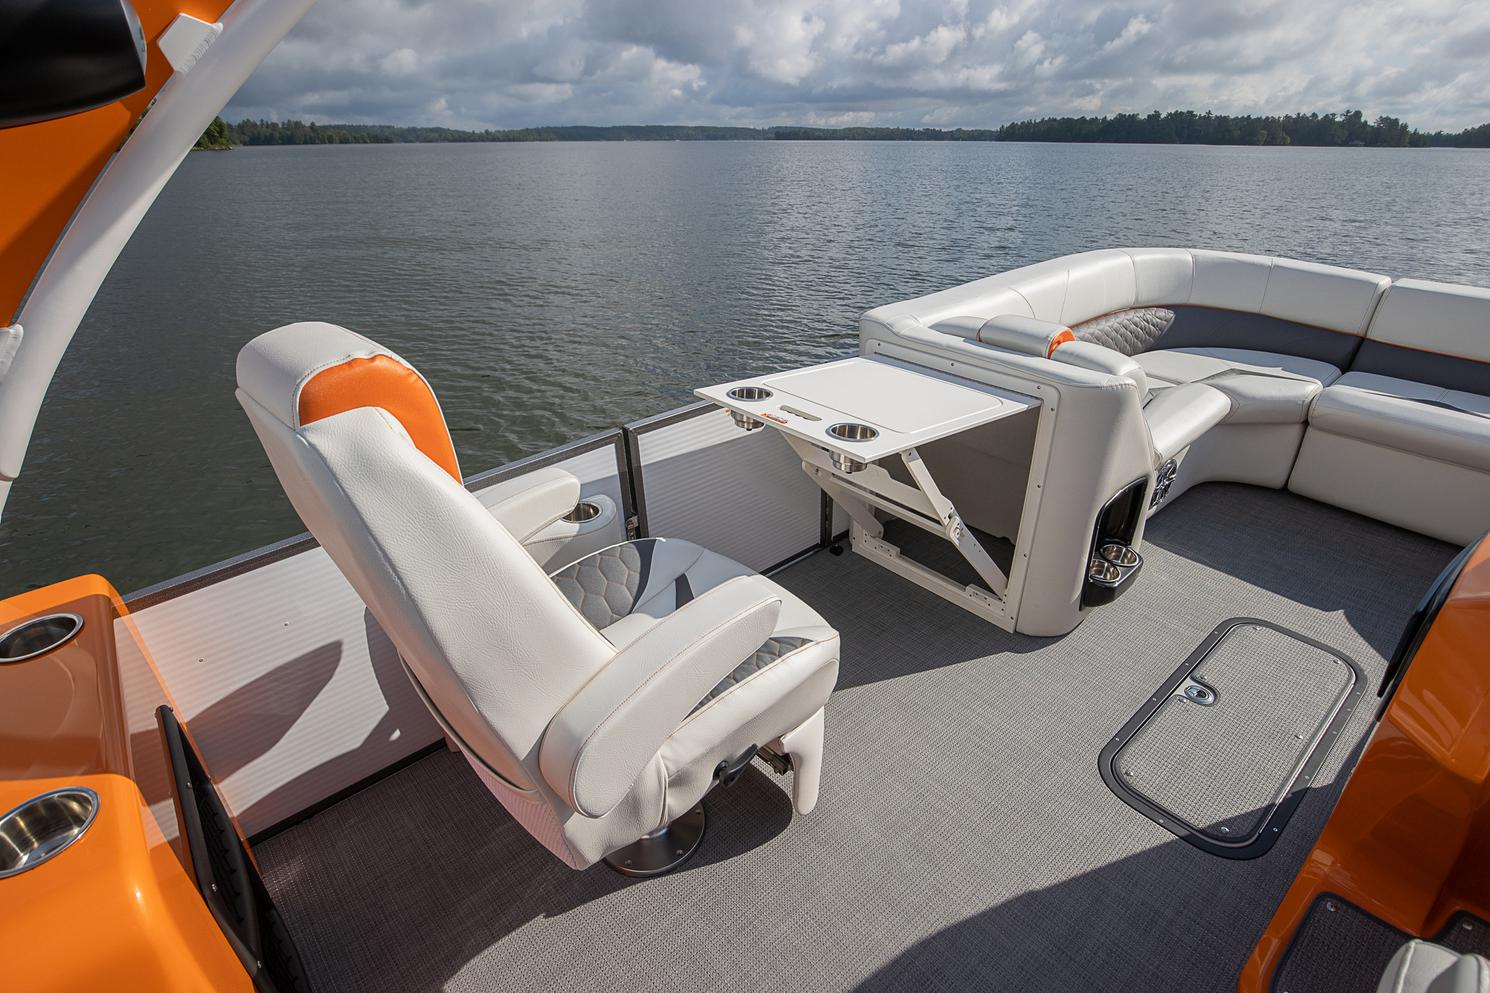 2021 Manitou Pontoon boat for sale, model of the boat is LX & Image # 6 of 15